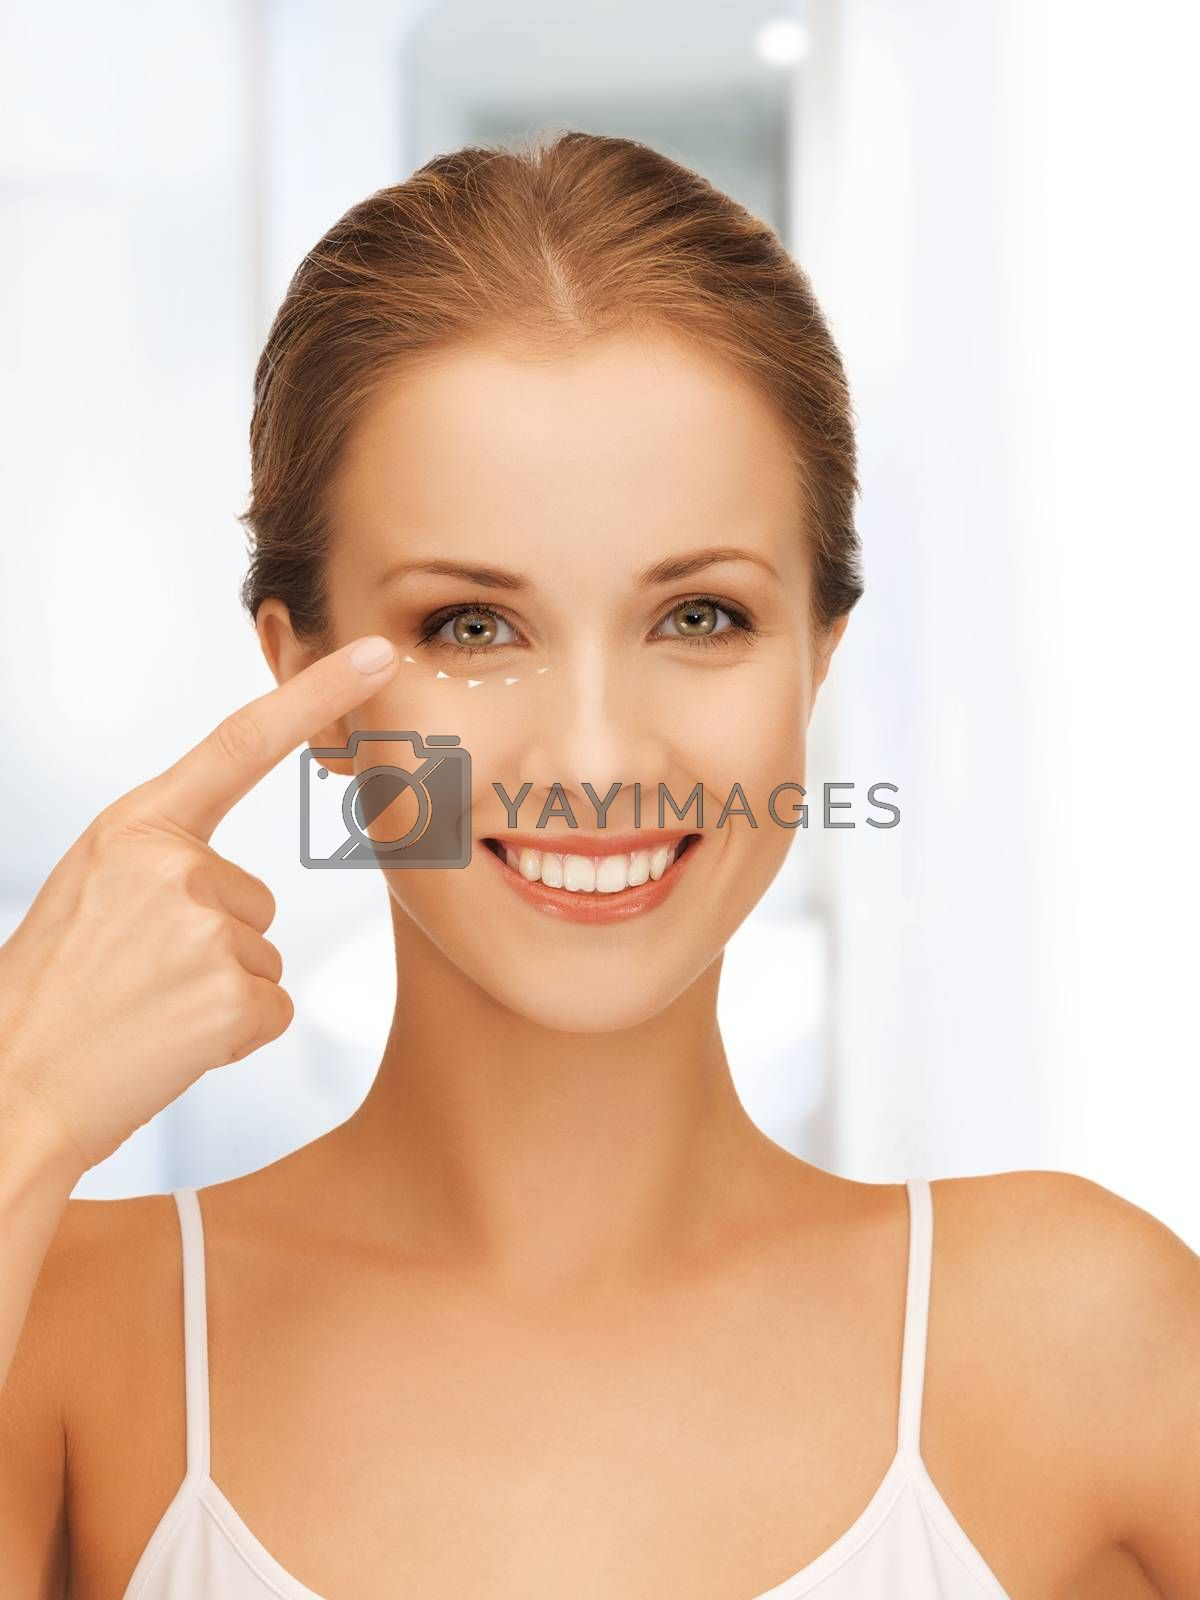 woman ready for cosmetic surgery by dolgachov